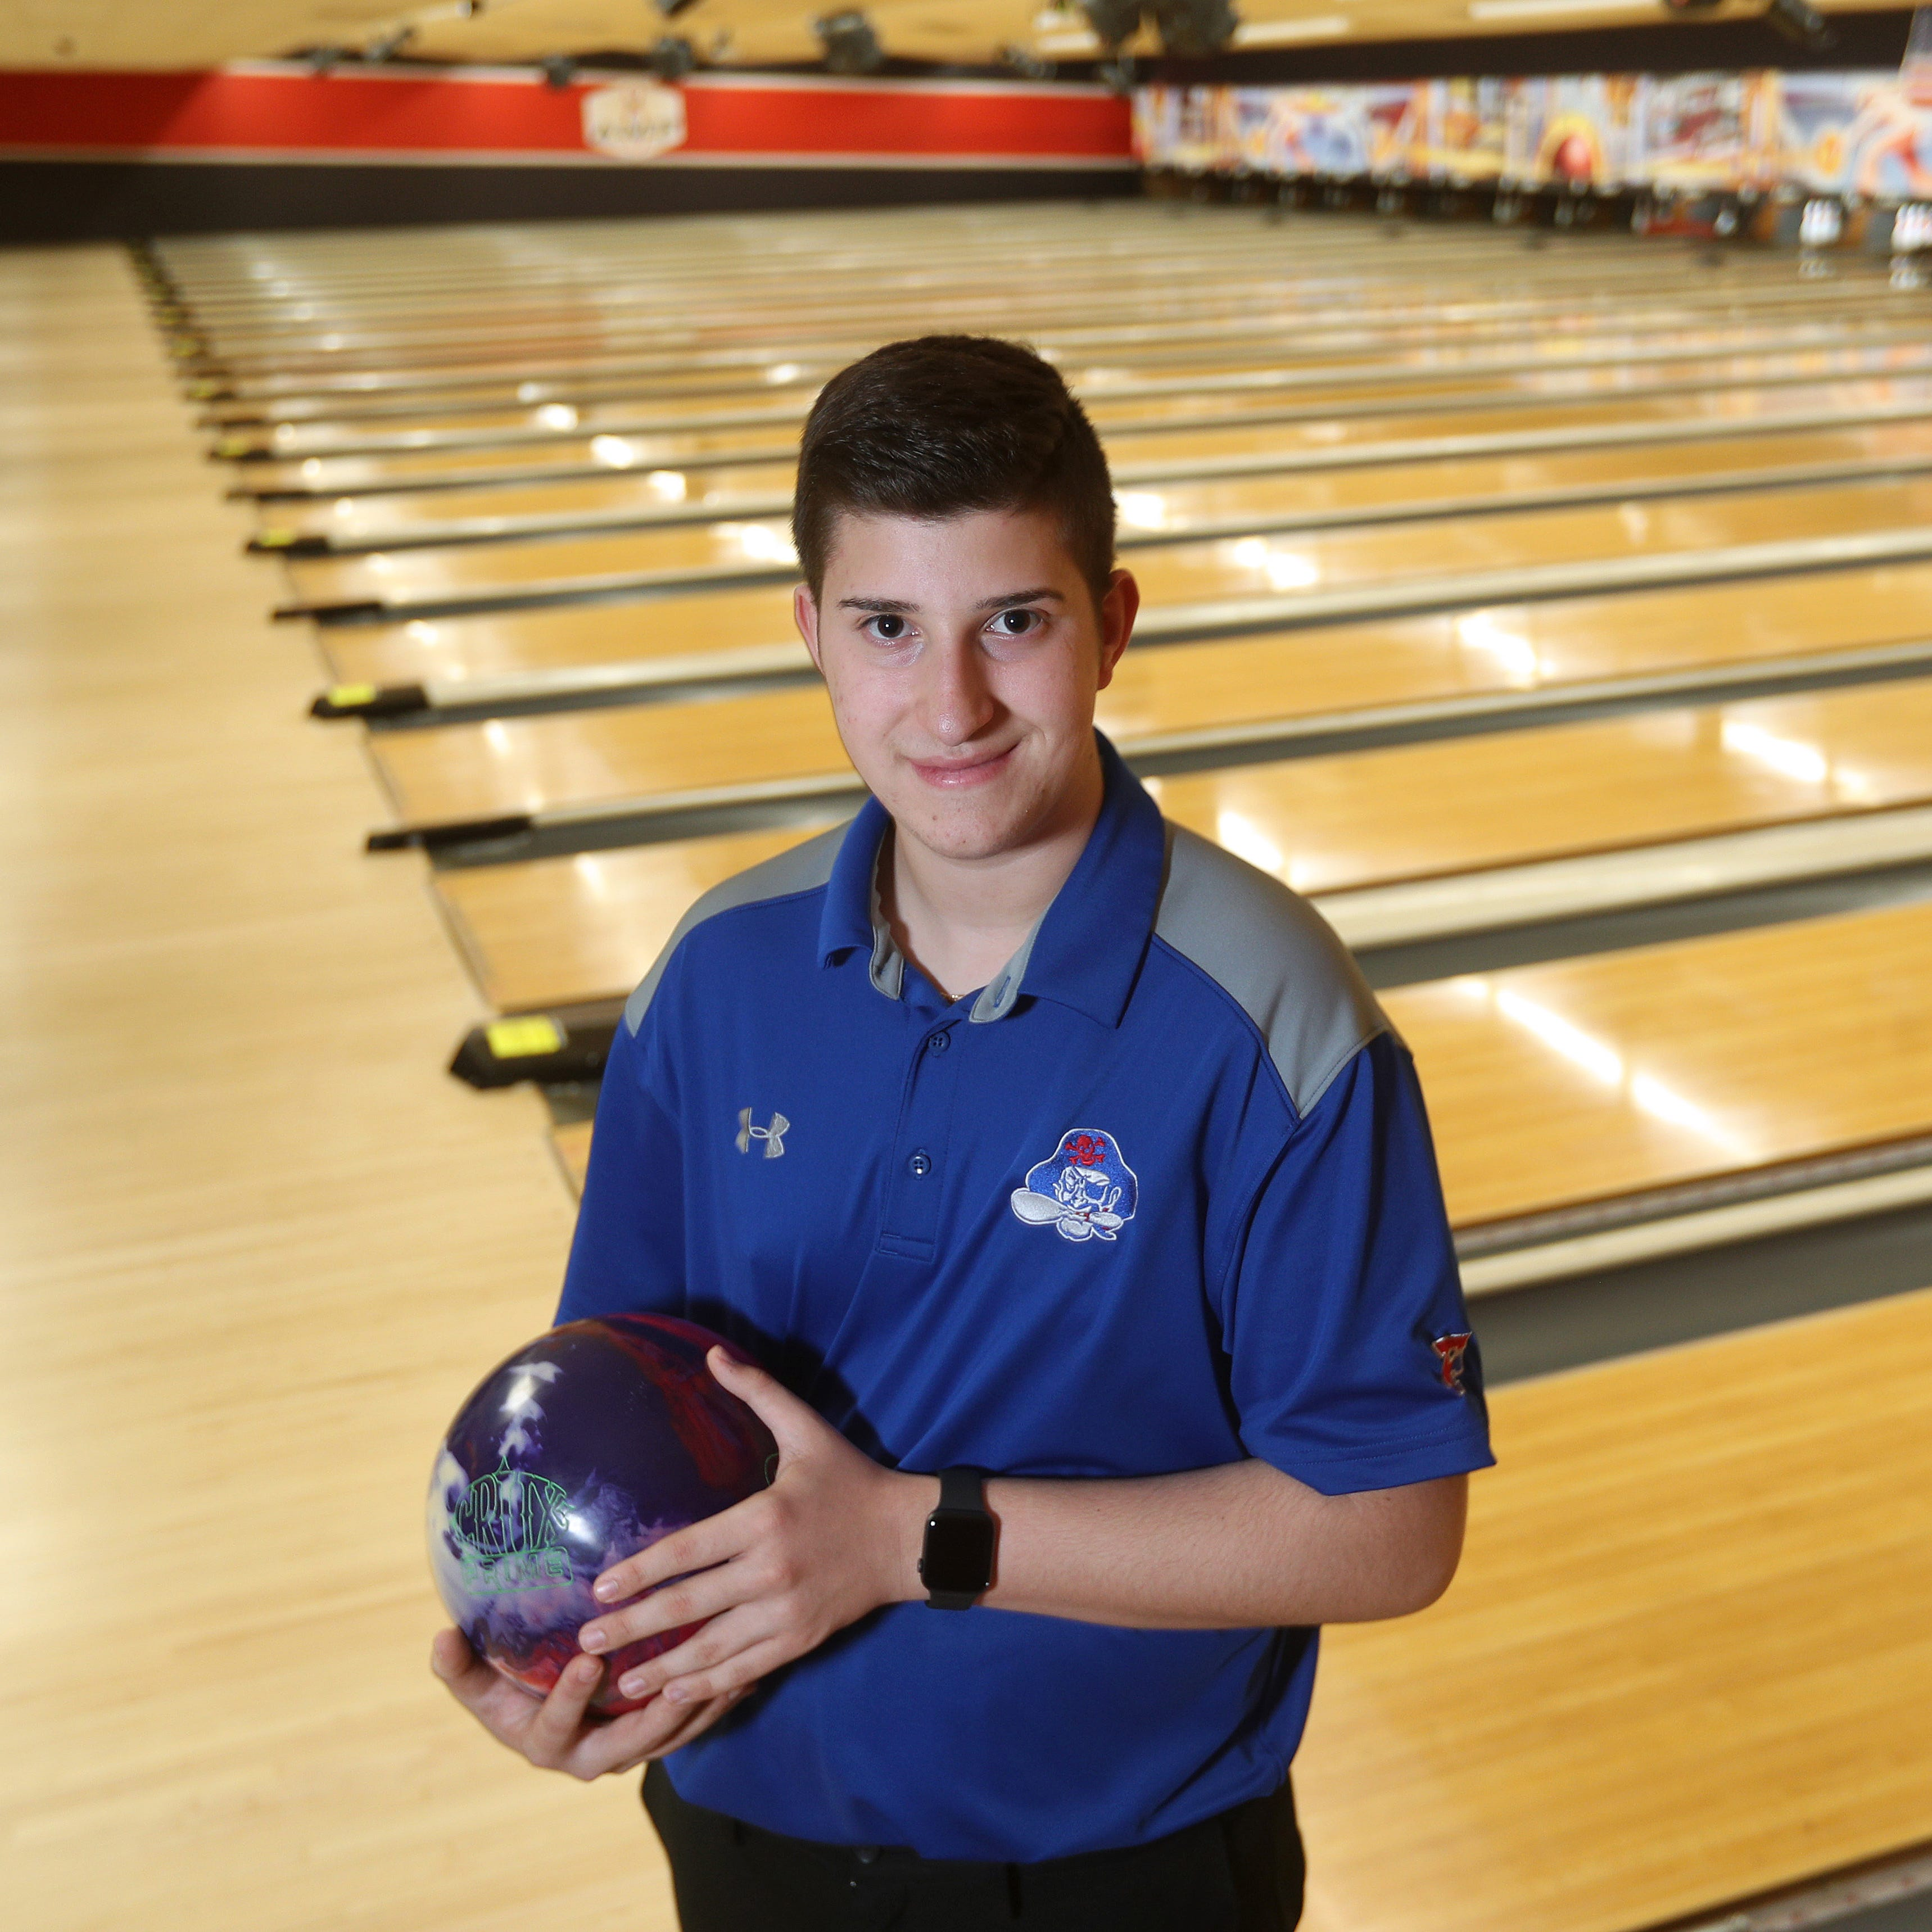 2019 AGR Boys Bowling Team: These are the best bowlers in Section V